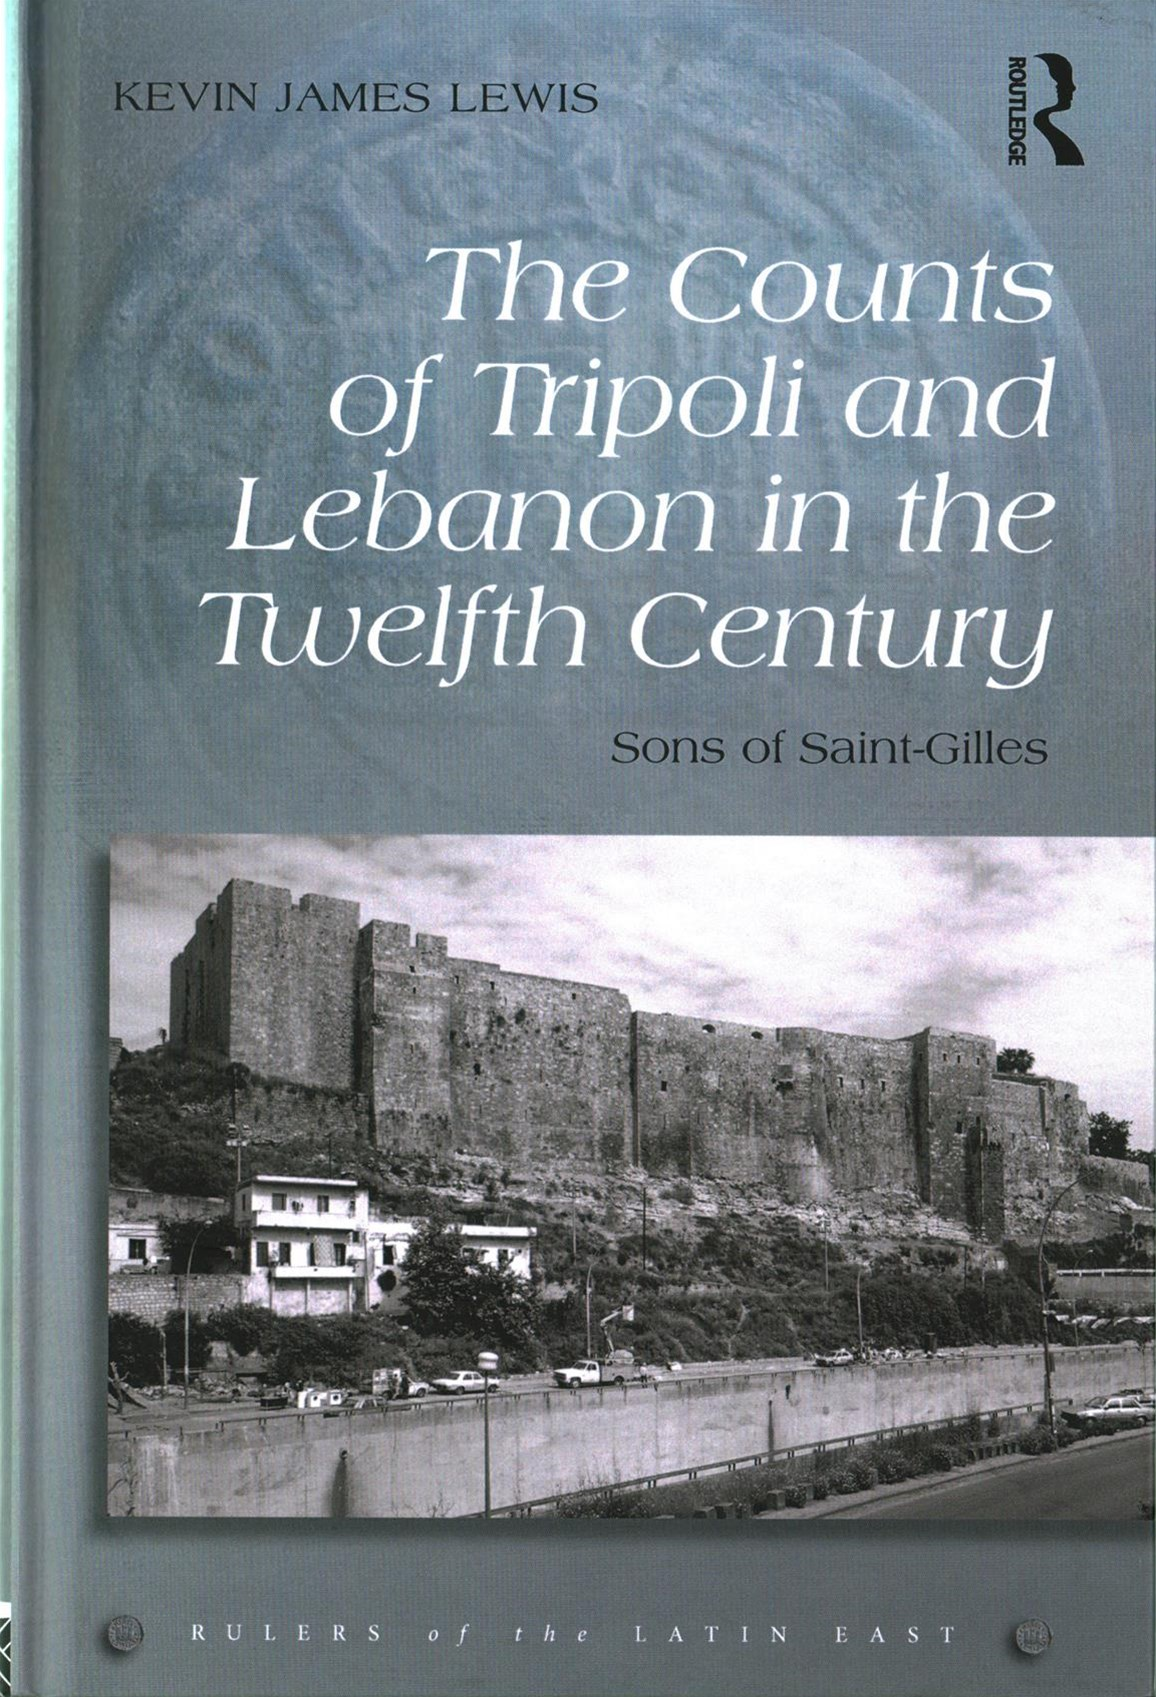 Counts of Tripoli and Lebanon in the Twelfth Century